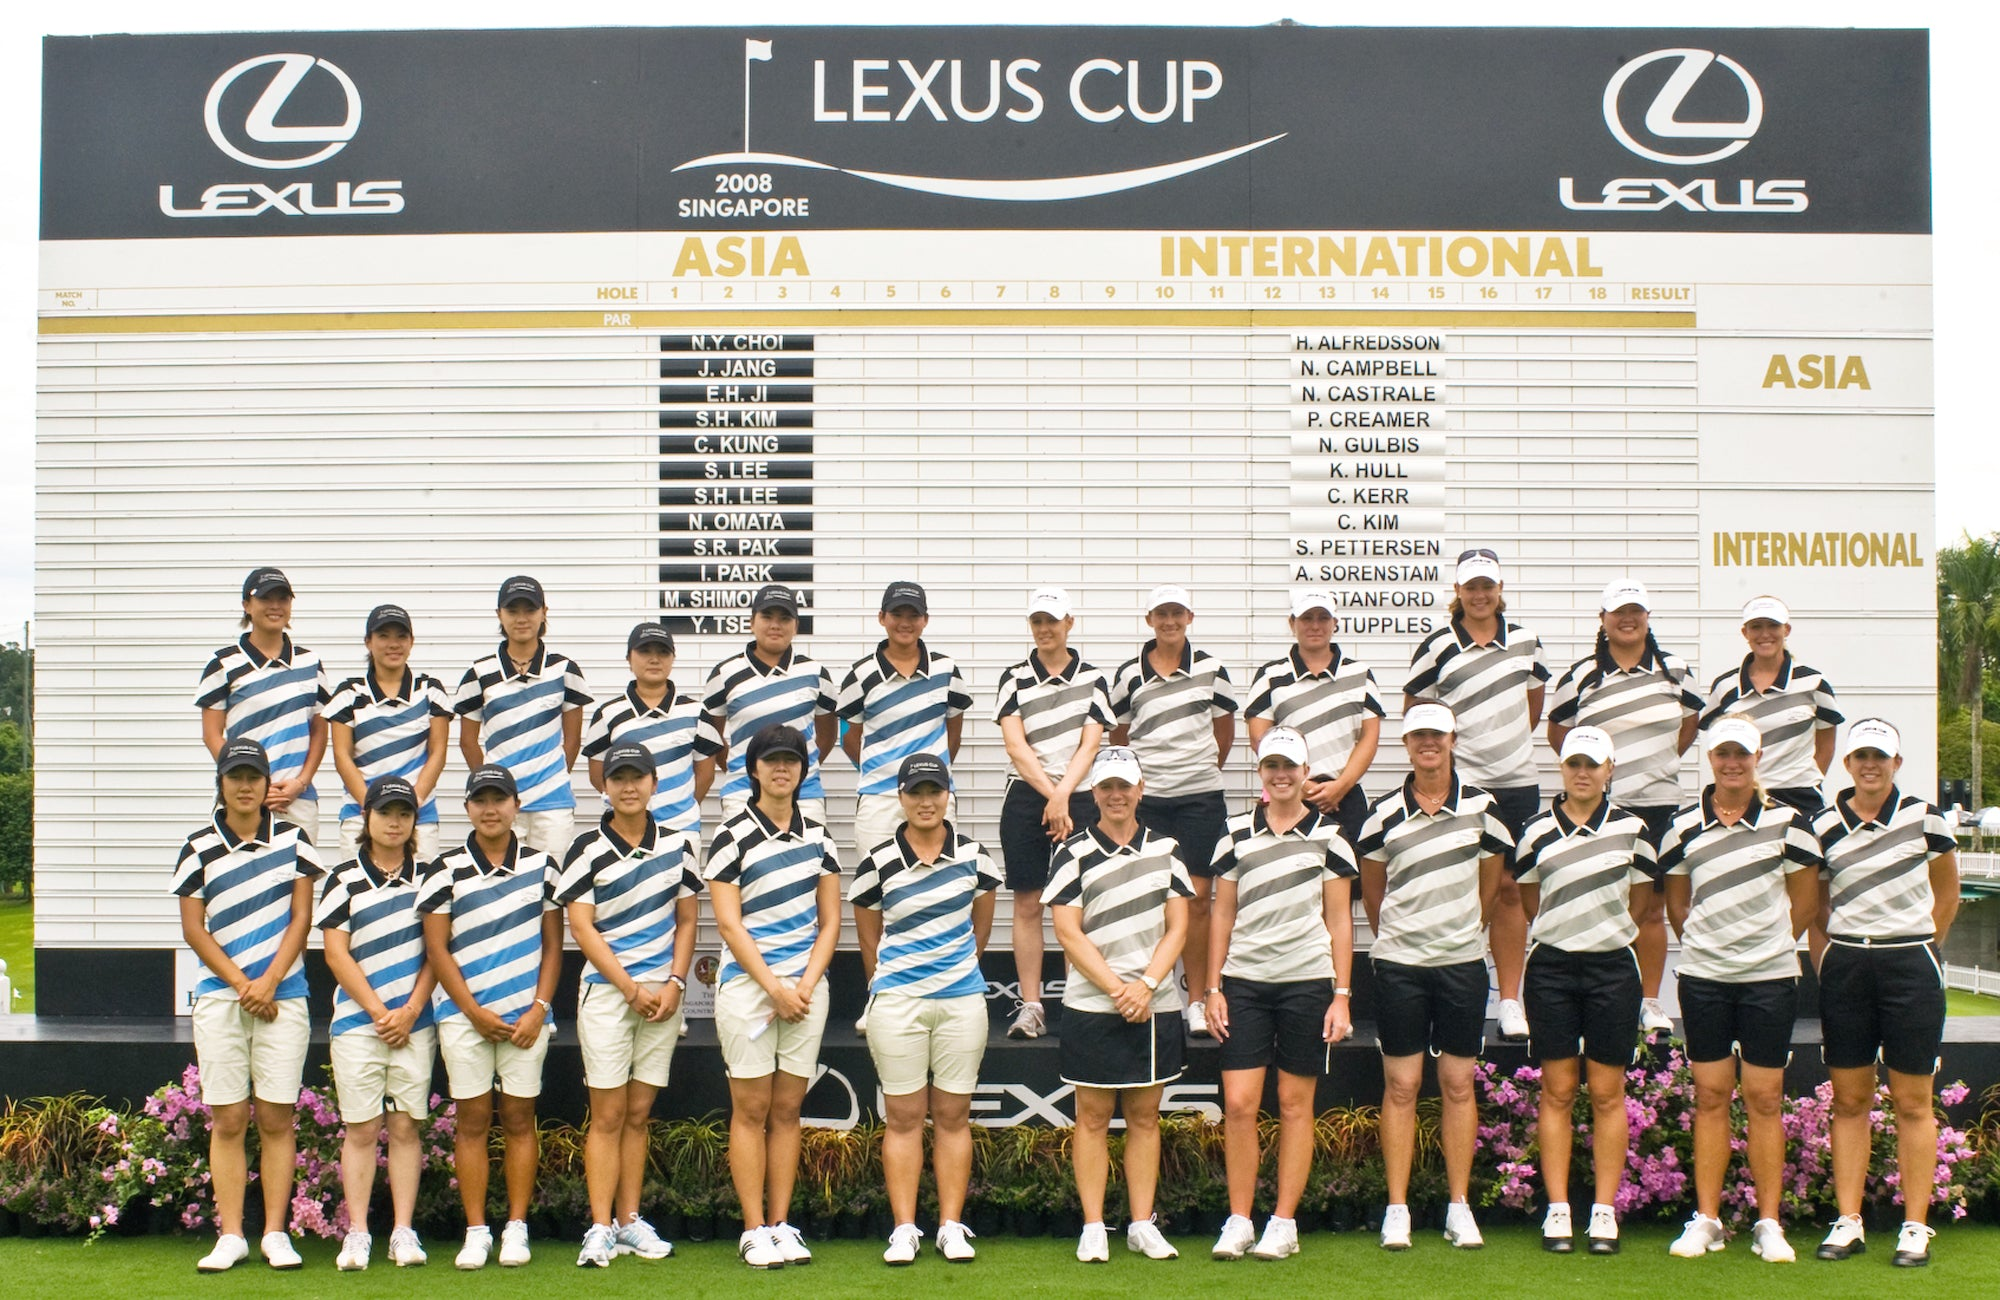 hansel Jo Soh Lexus Cup 2008 uniform design Singapore fashion designer